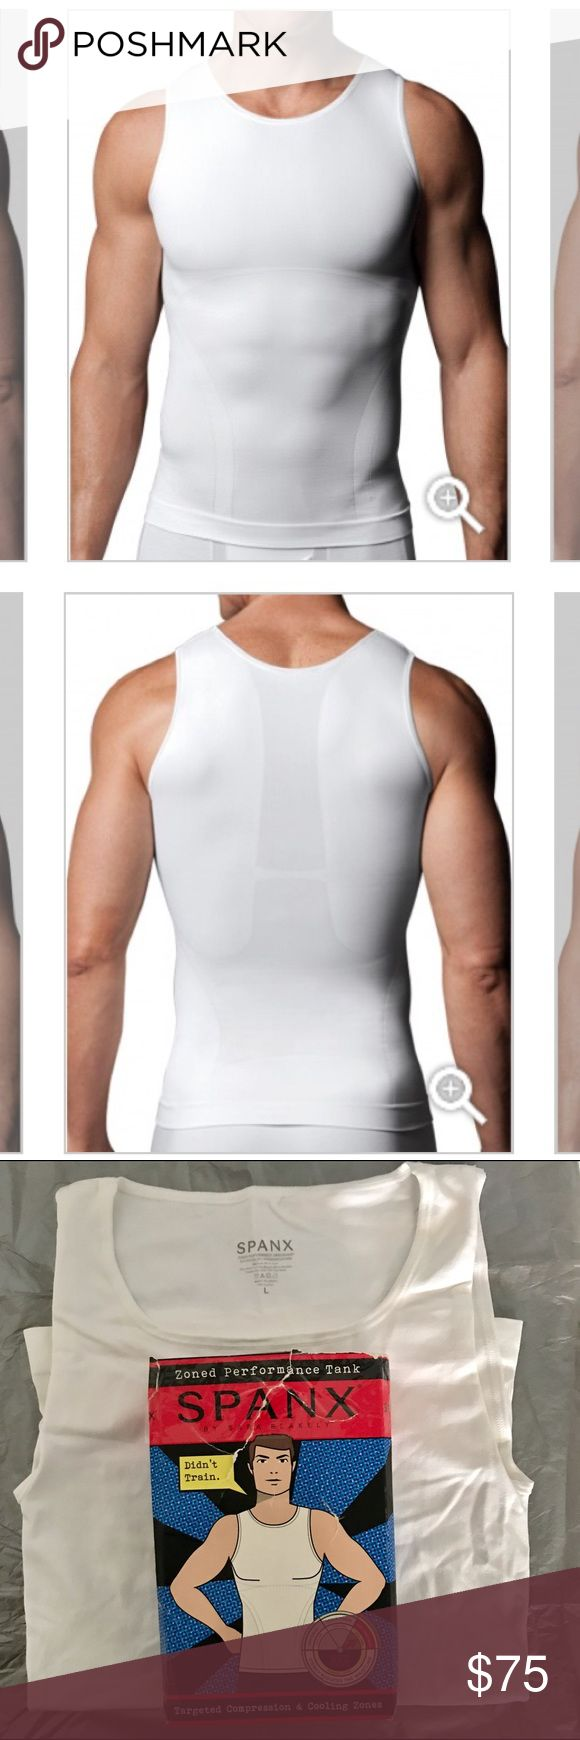 SPANX Men Zoned Performance Tank Compression NWT BRAND NEW, STILL IN ORIGINAL PACKAGING! NWT! Celebrities' secret to the perfect shape! I use all different kind of SPANX on my actors and models! Great for playing sports too! Check out the other models of Spanx I have for sale! 🛍 SPANX Shirts Tank Tops